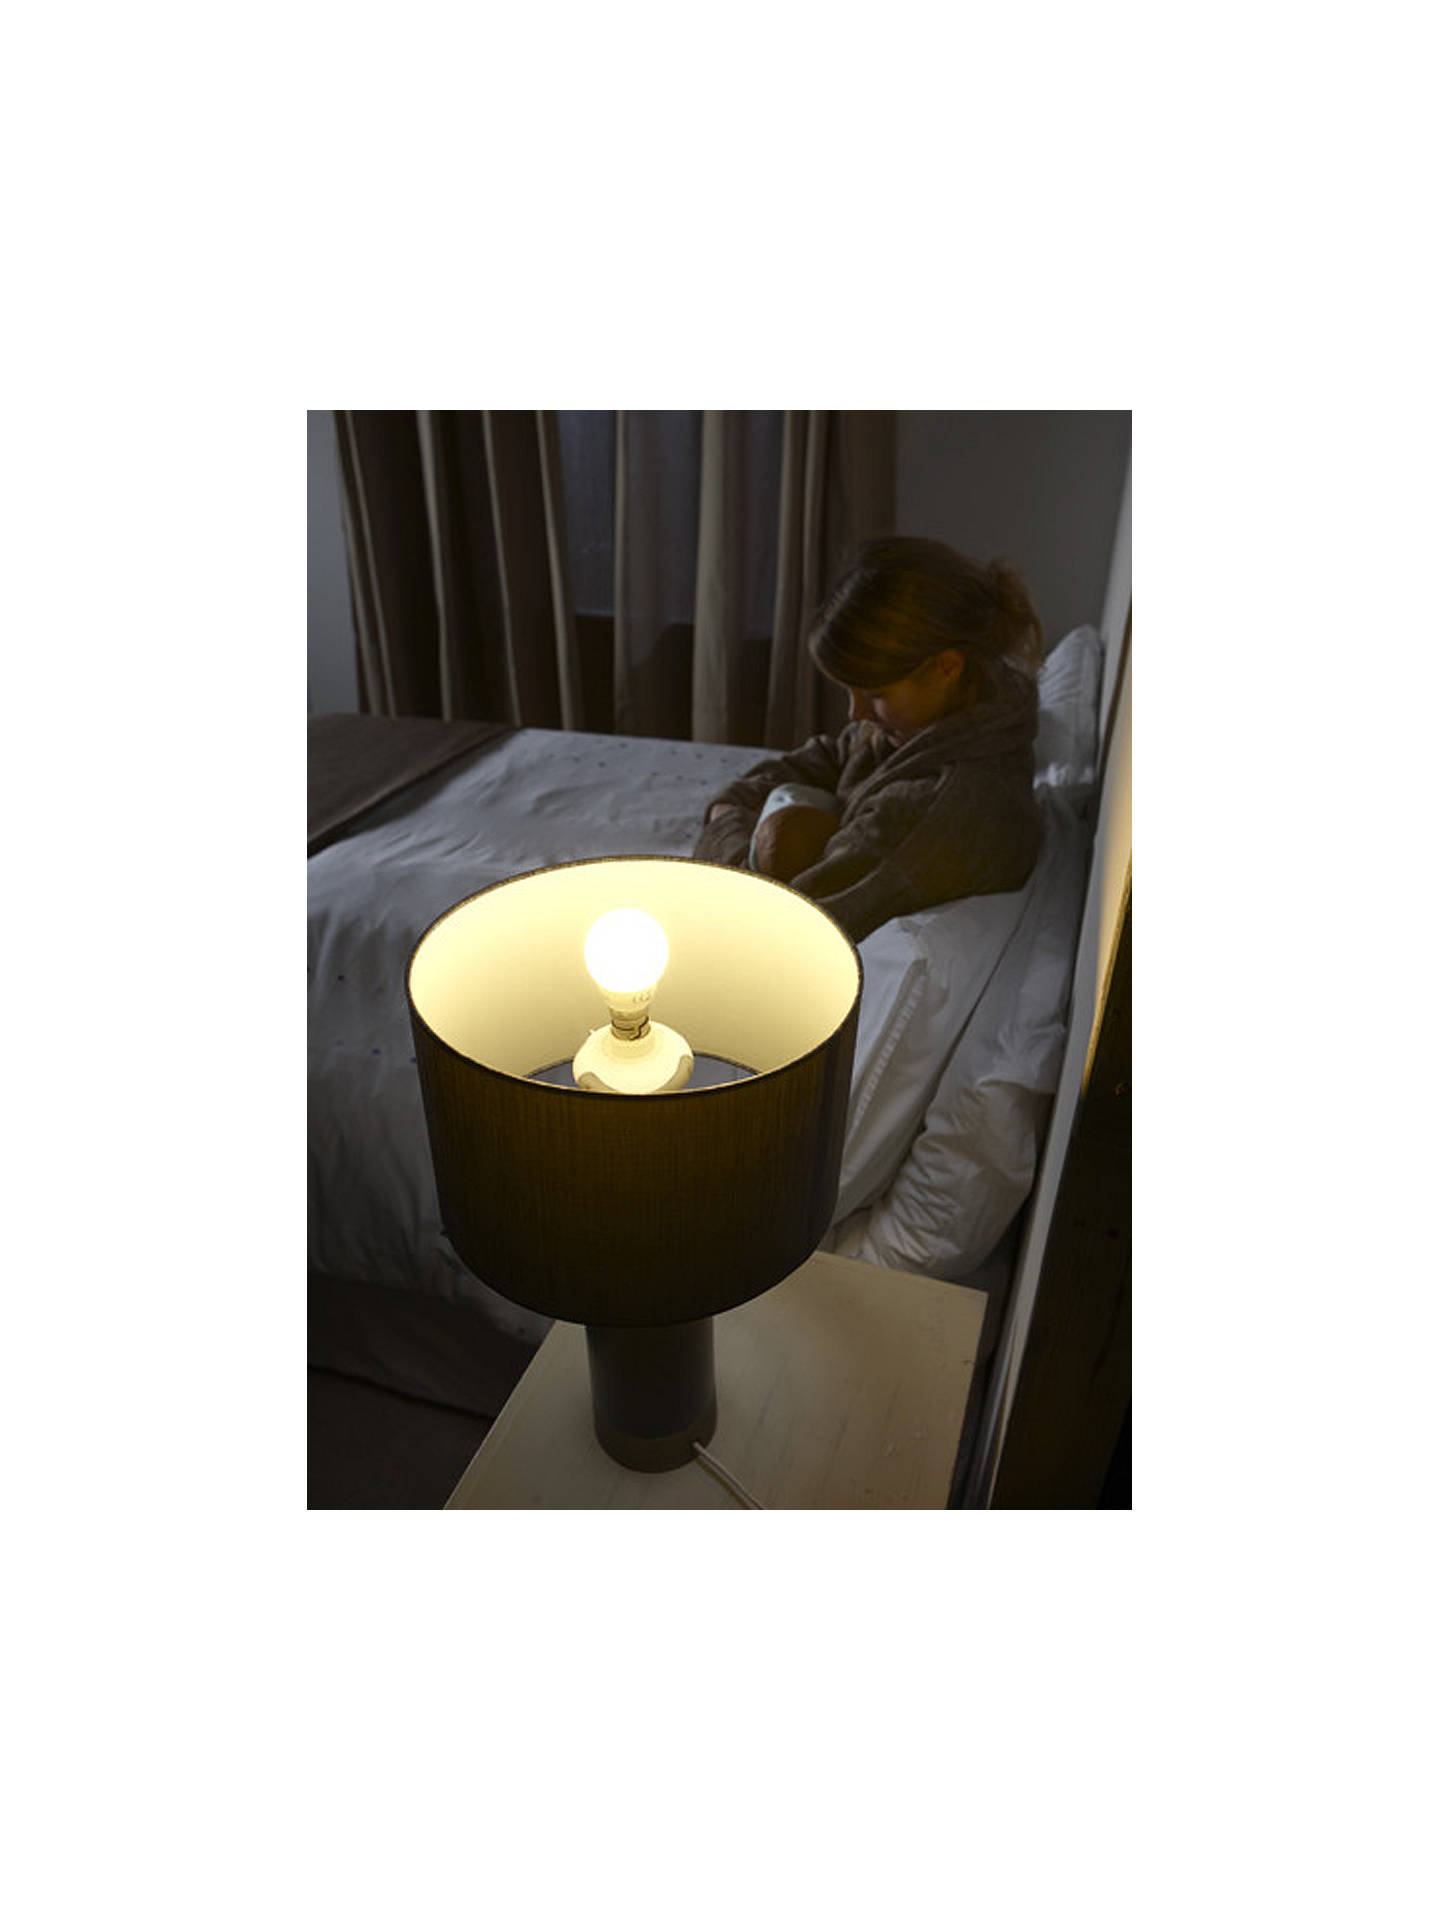 BuyGro Company Gro Light 2 In 1 Night Light Online At Johnlewis.